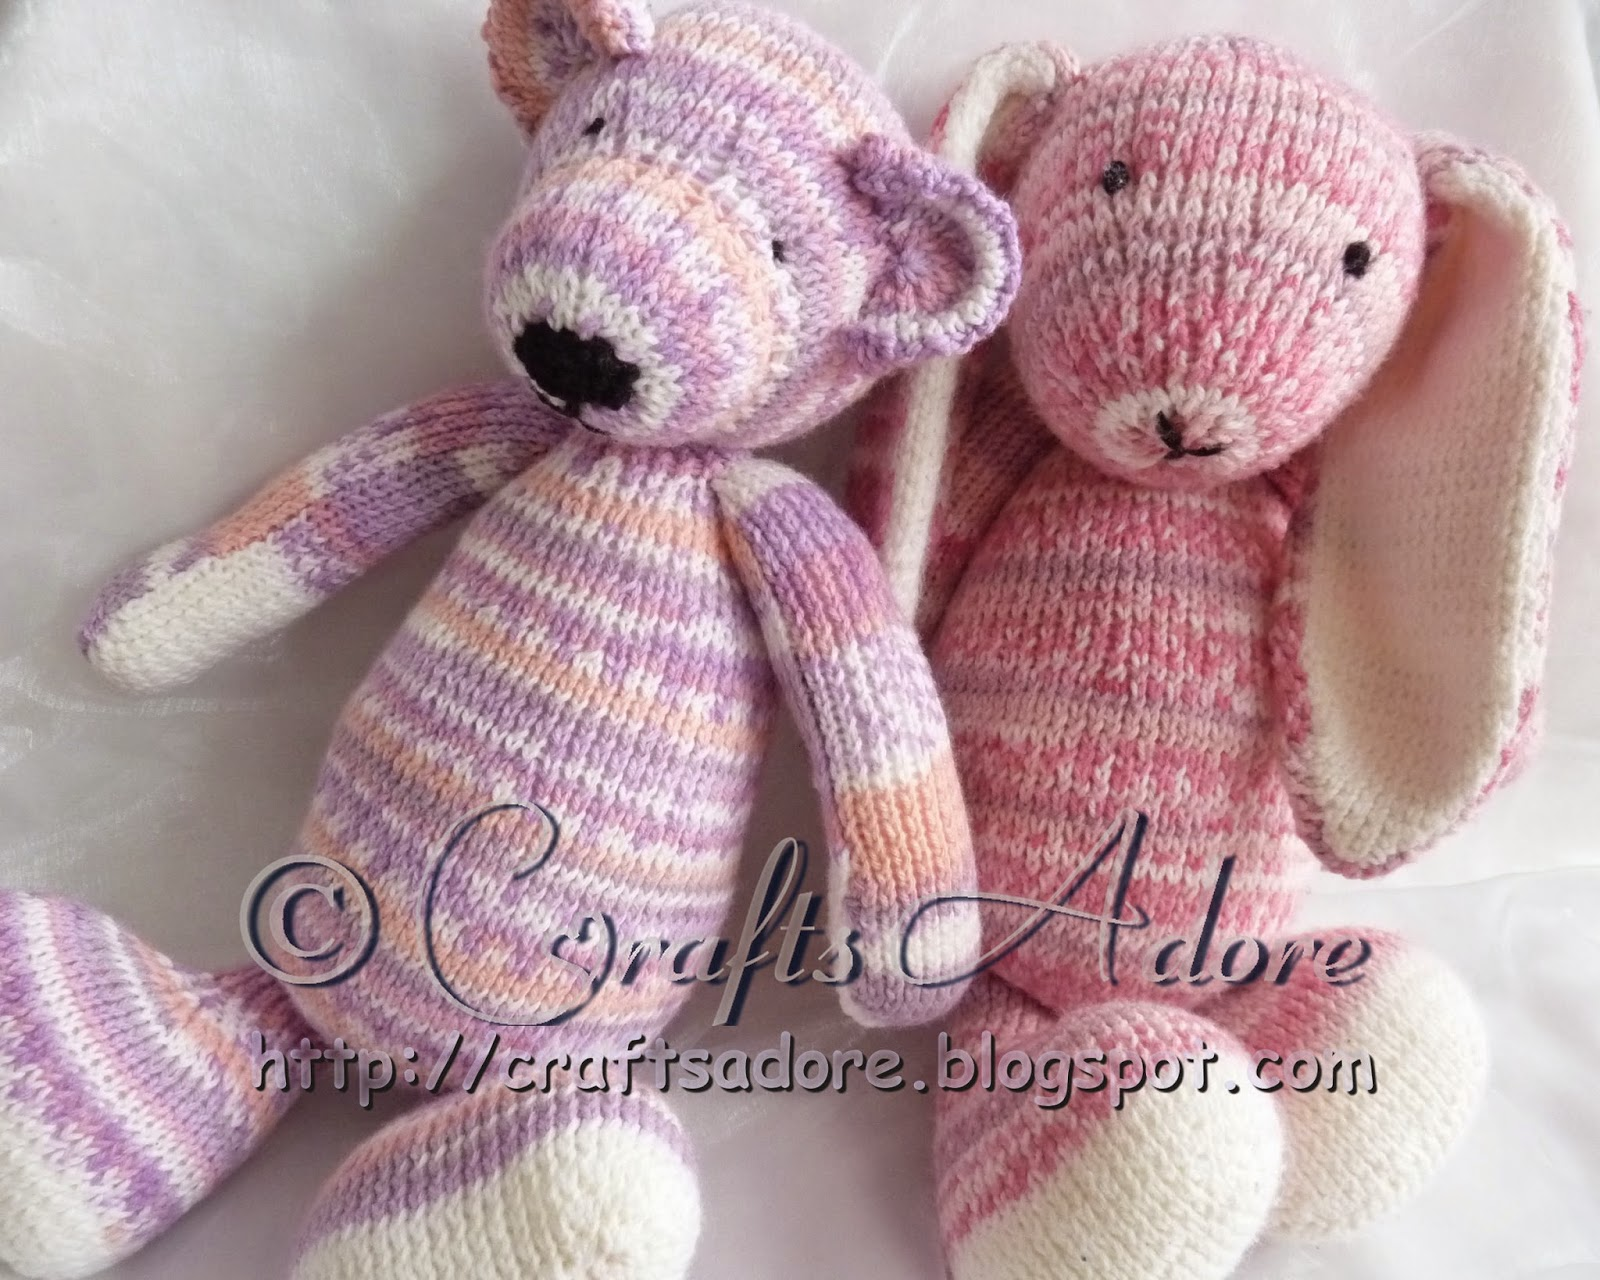 Sirdar Toy Knitting Patterns : CraftsAdore: Adorable Knitted Sirdar Snuggly Teddy Bear